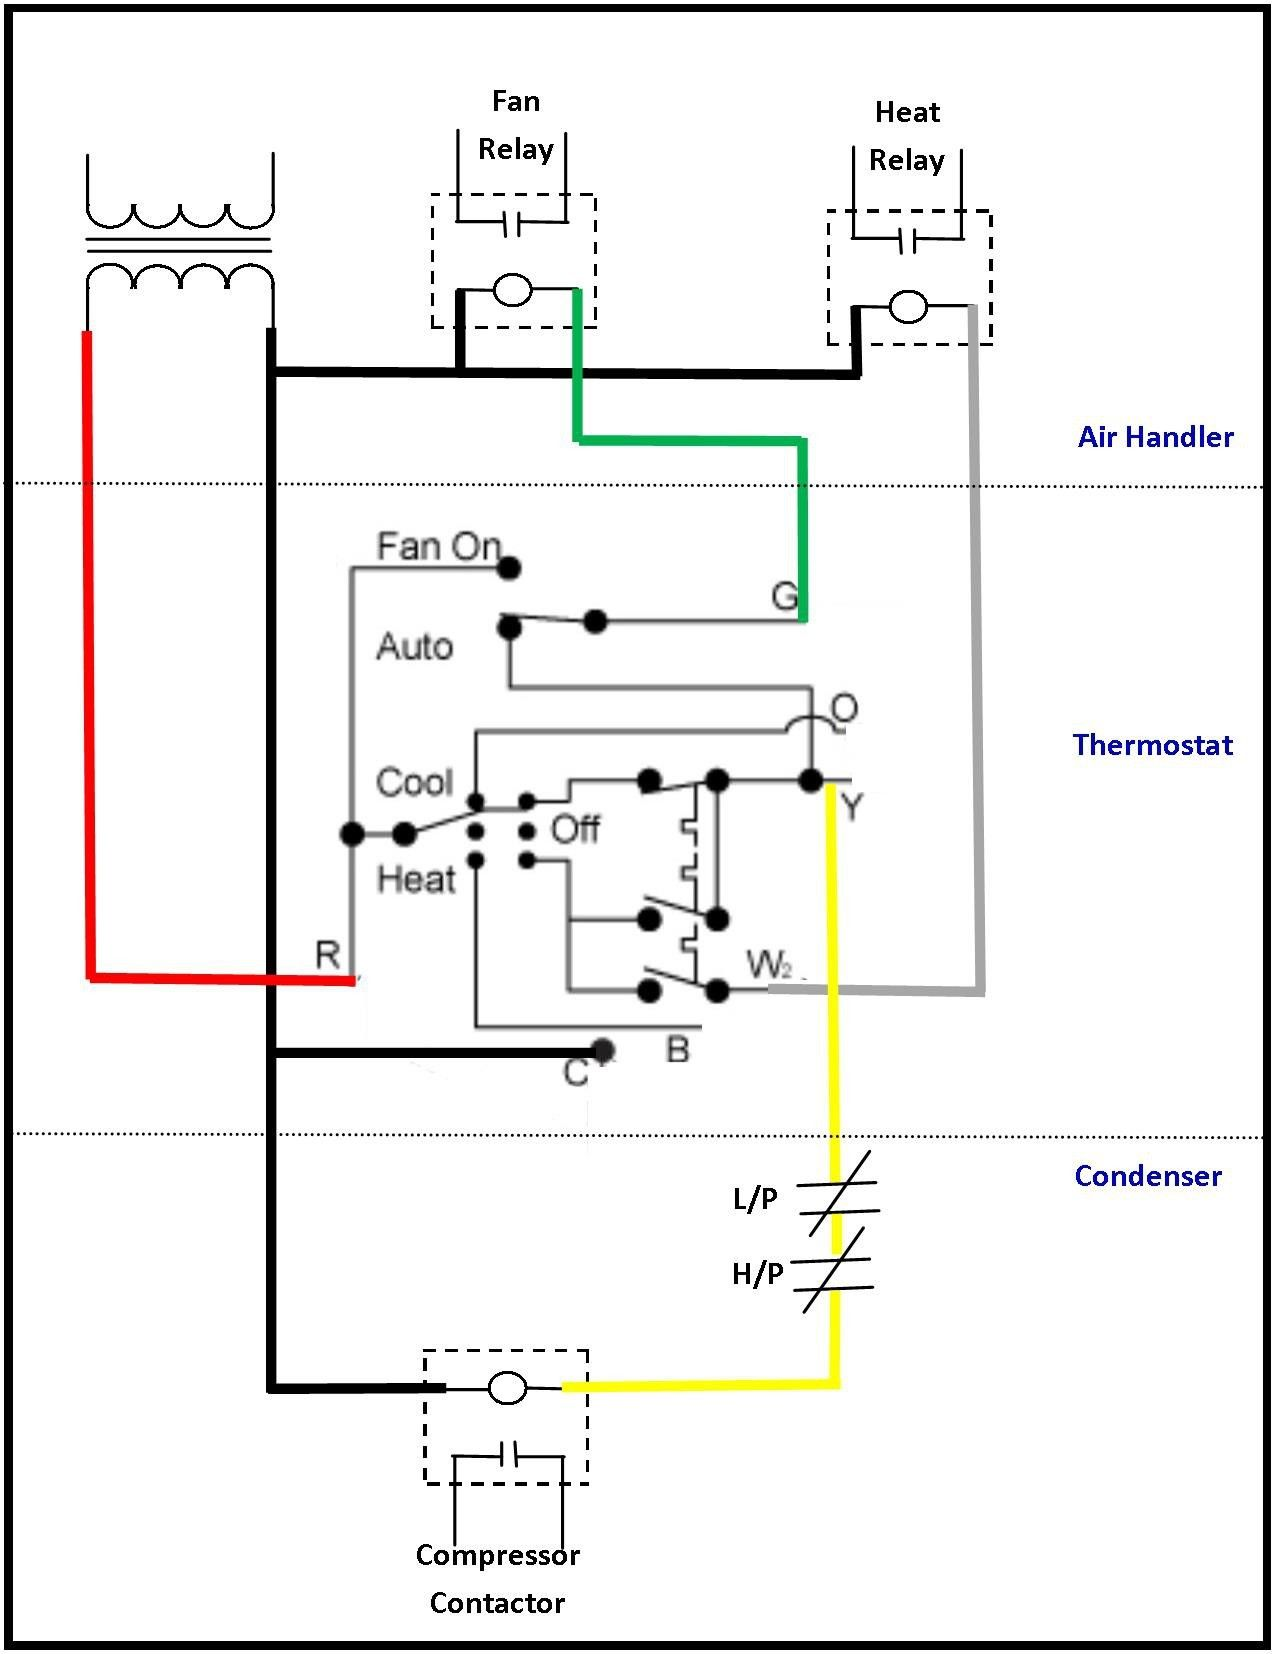 New Bryant Gas Furnace Wiring Diagram #diagram ... on